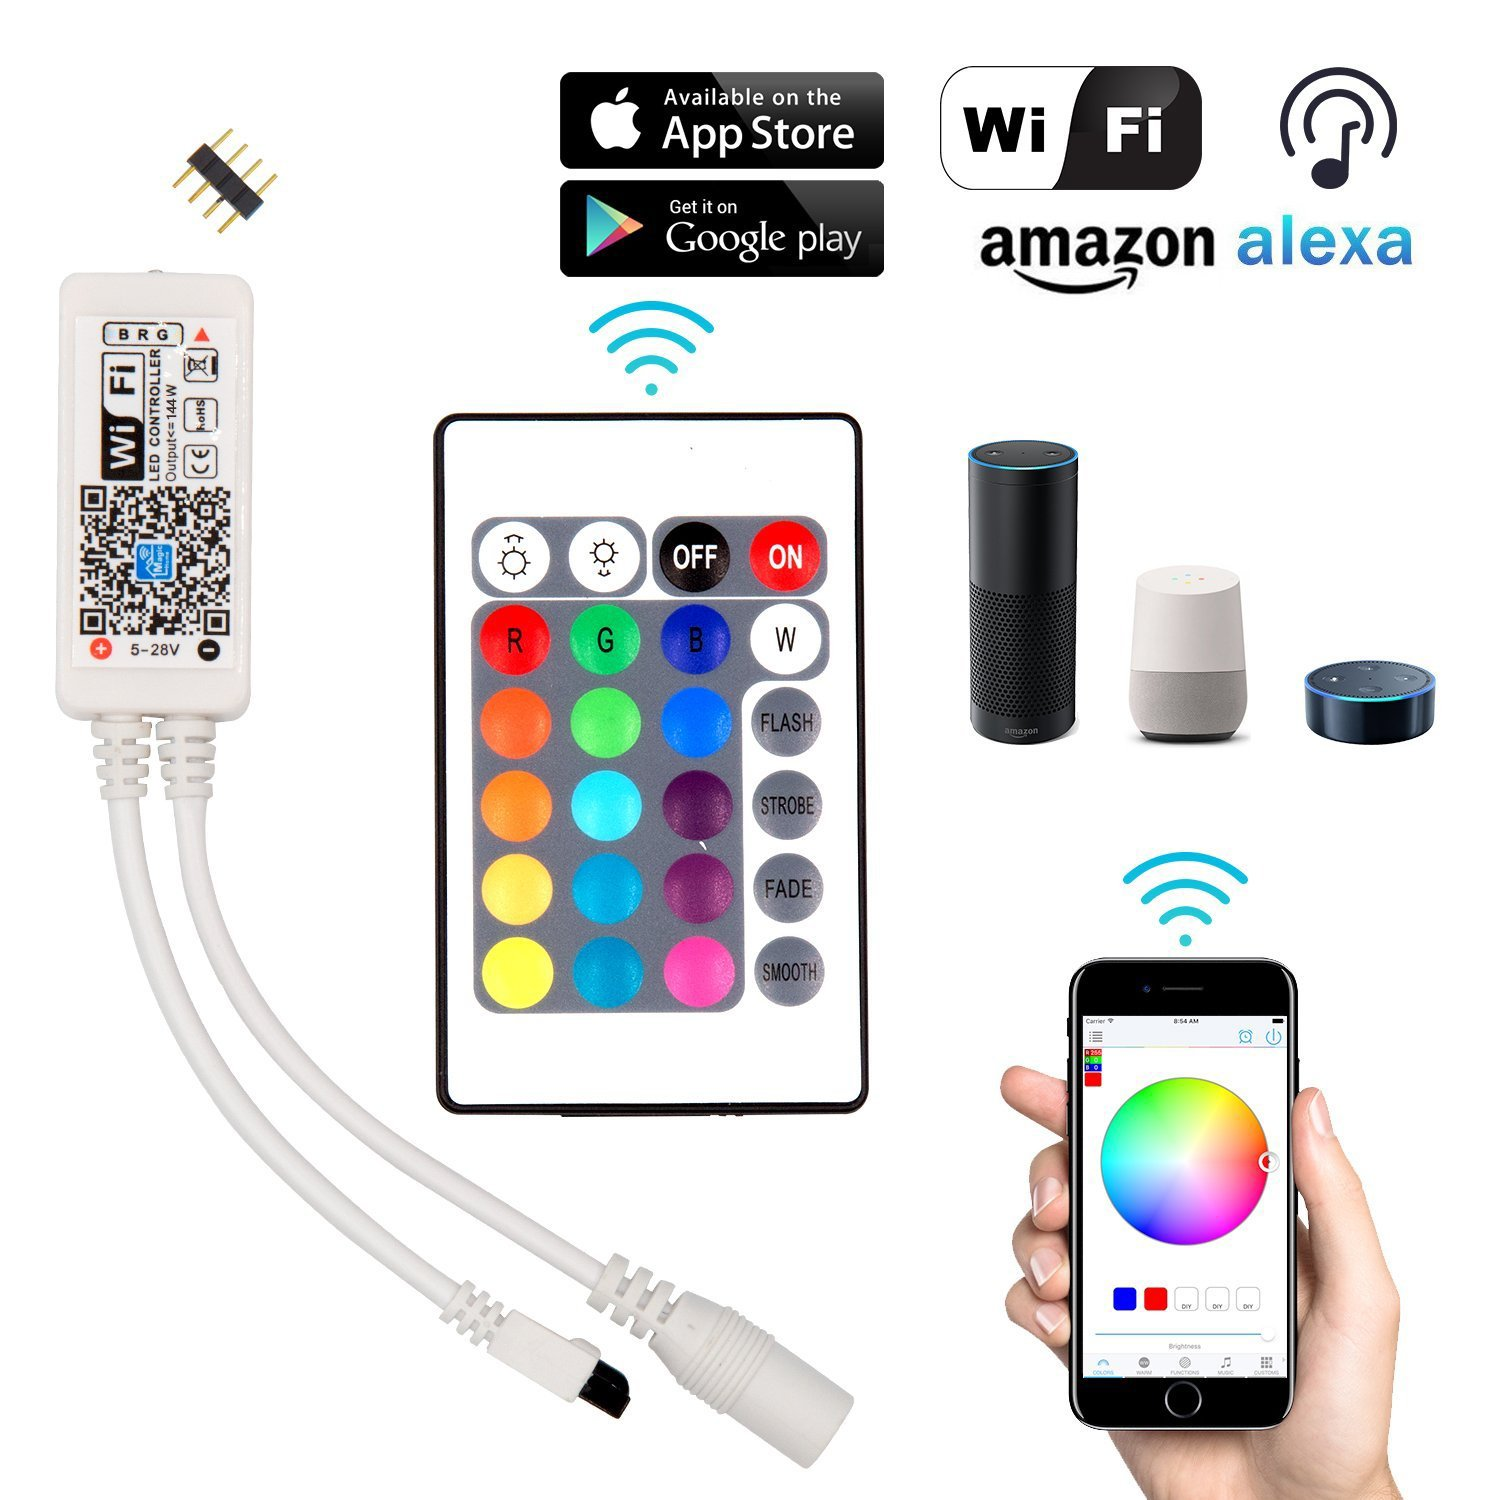 Wifi LED Strip Lights Kits, 12V RGB LED Strip Lights with 24 Key Remote, 5M 150LEDs Waterproof SMD 5050 Flexible LED Light, Wireless Smart Phone Controlled, Work with Alexa & Echo Dot, Compatible with Google Home Assistant & IFTTT [Energy Class A++